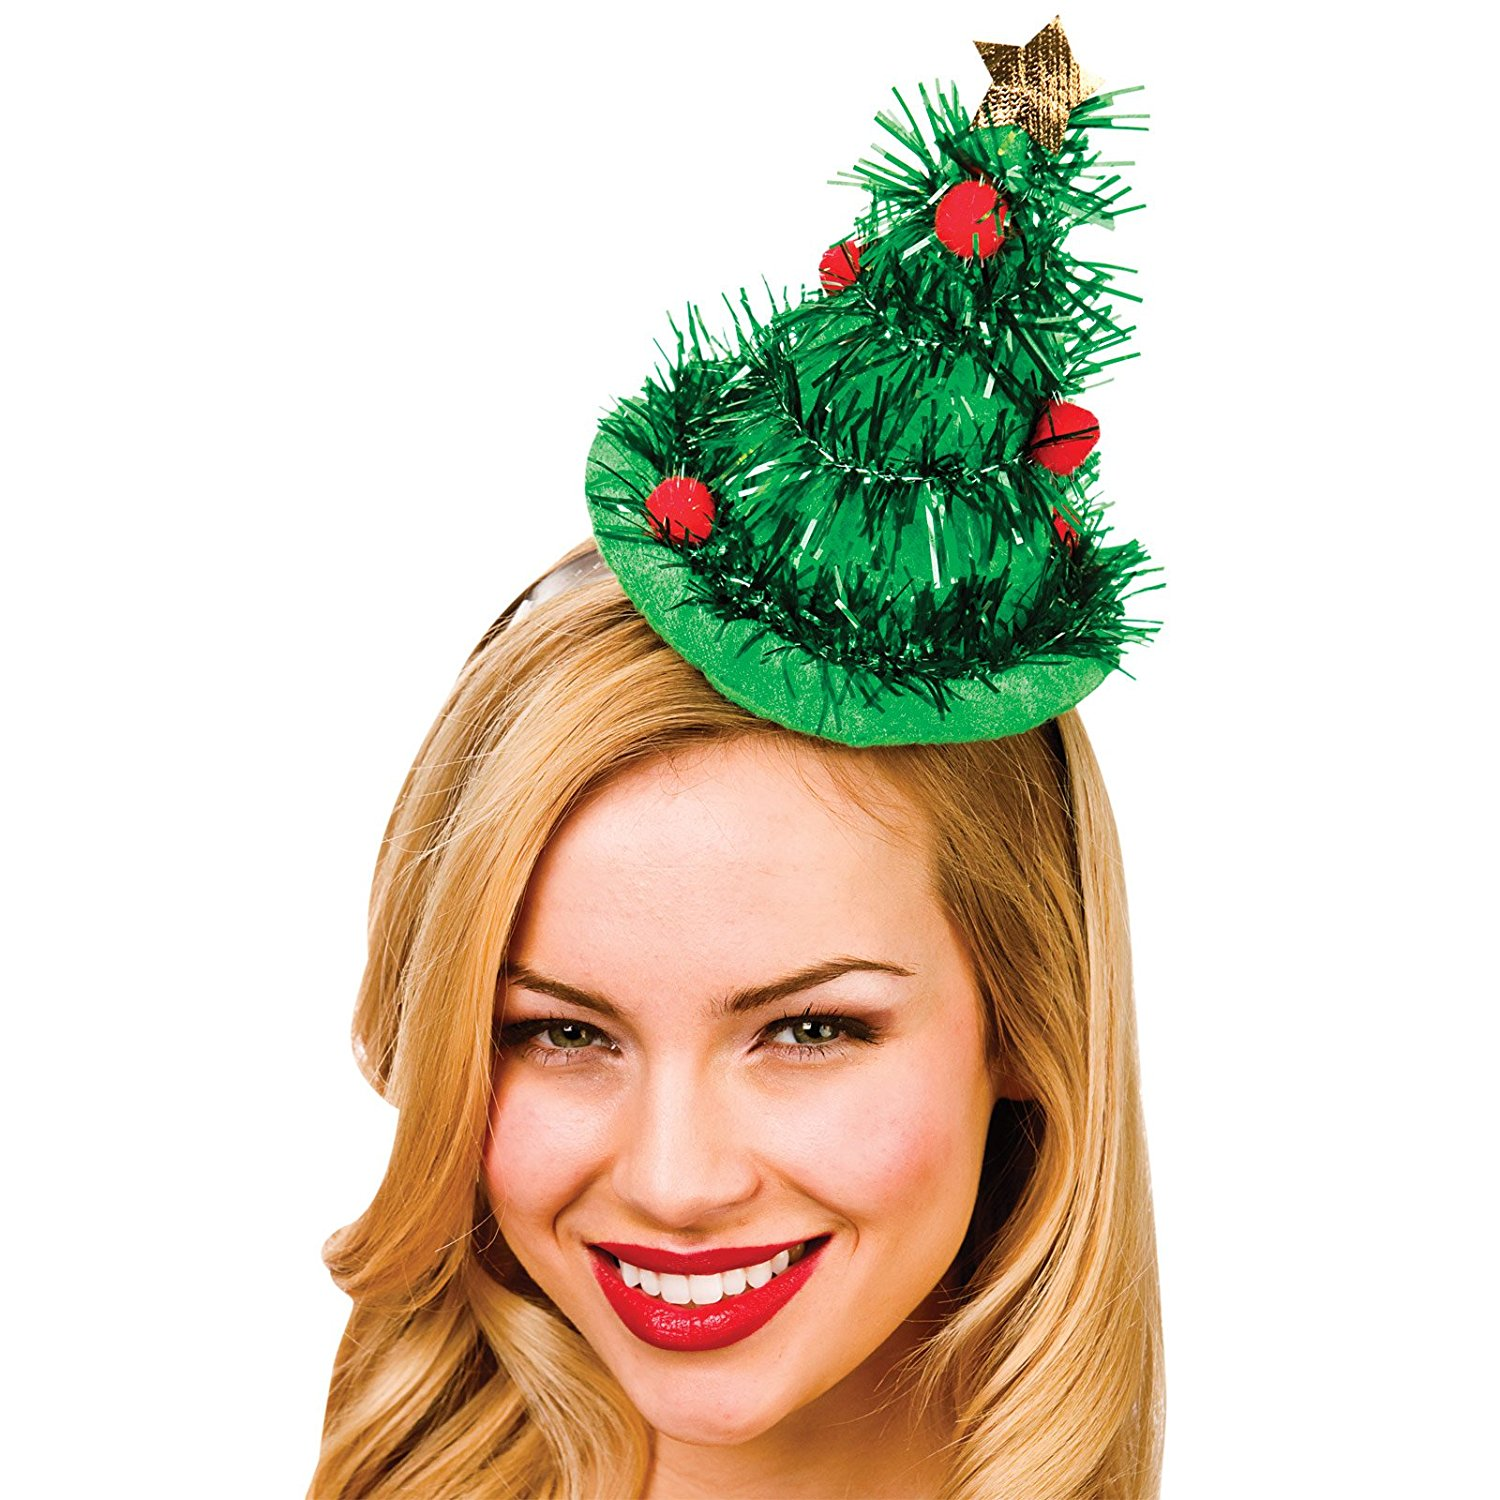 aeda600094c20 Adult Green Tinsel Christmas Tree Hat on Headband for Party Night Outs